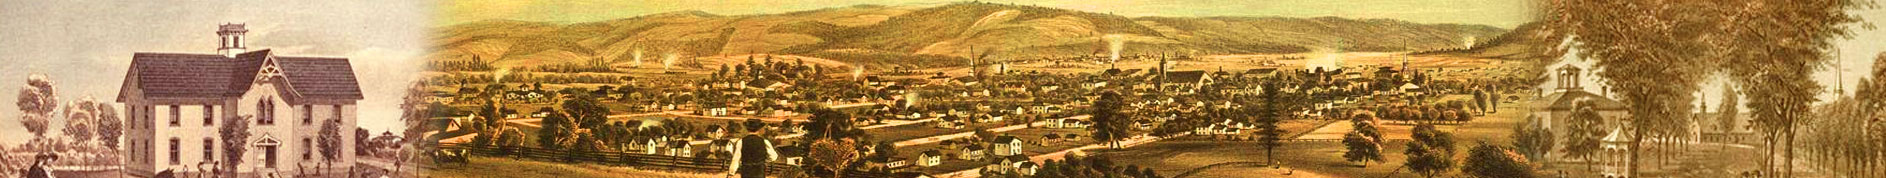 Waverly NY Historic View